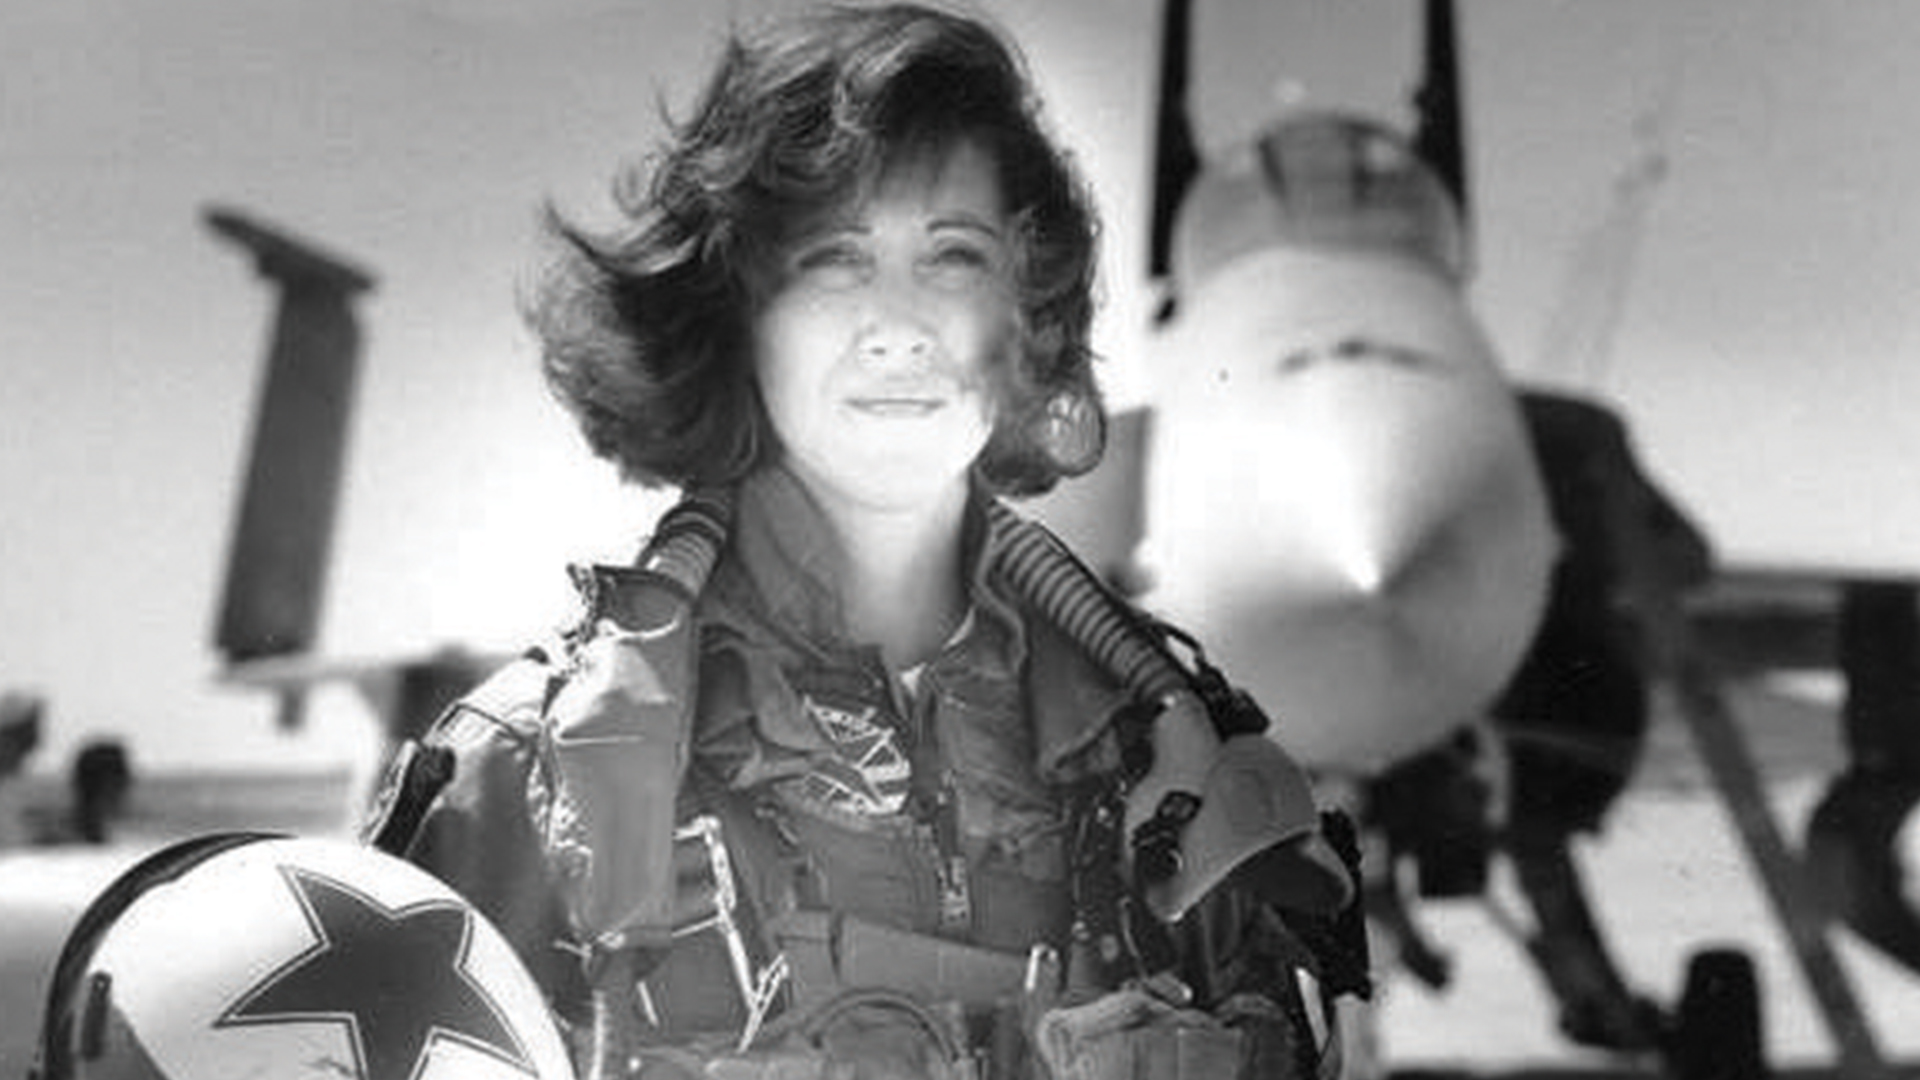 'Nerves of steel': She calmly landed the Southwest flight, just as you'd expect of a former fighter pilot